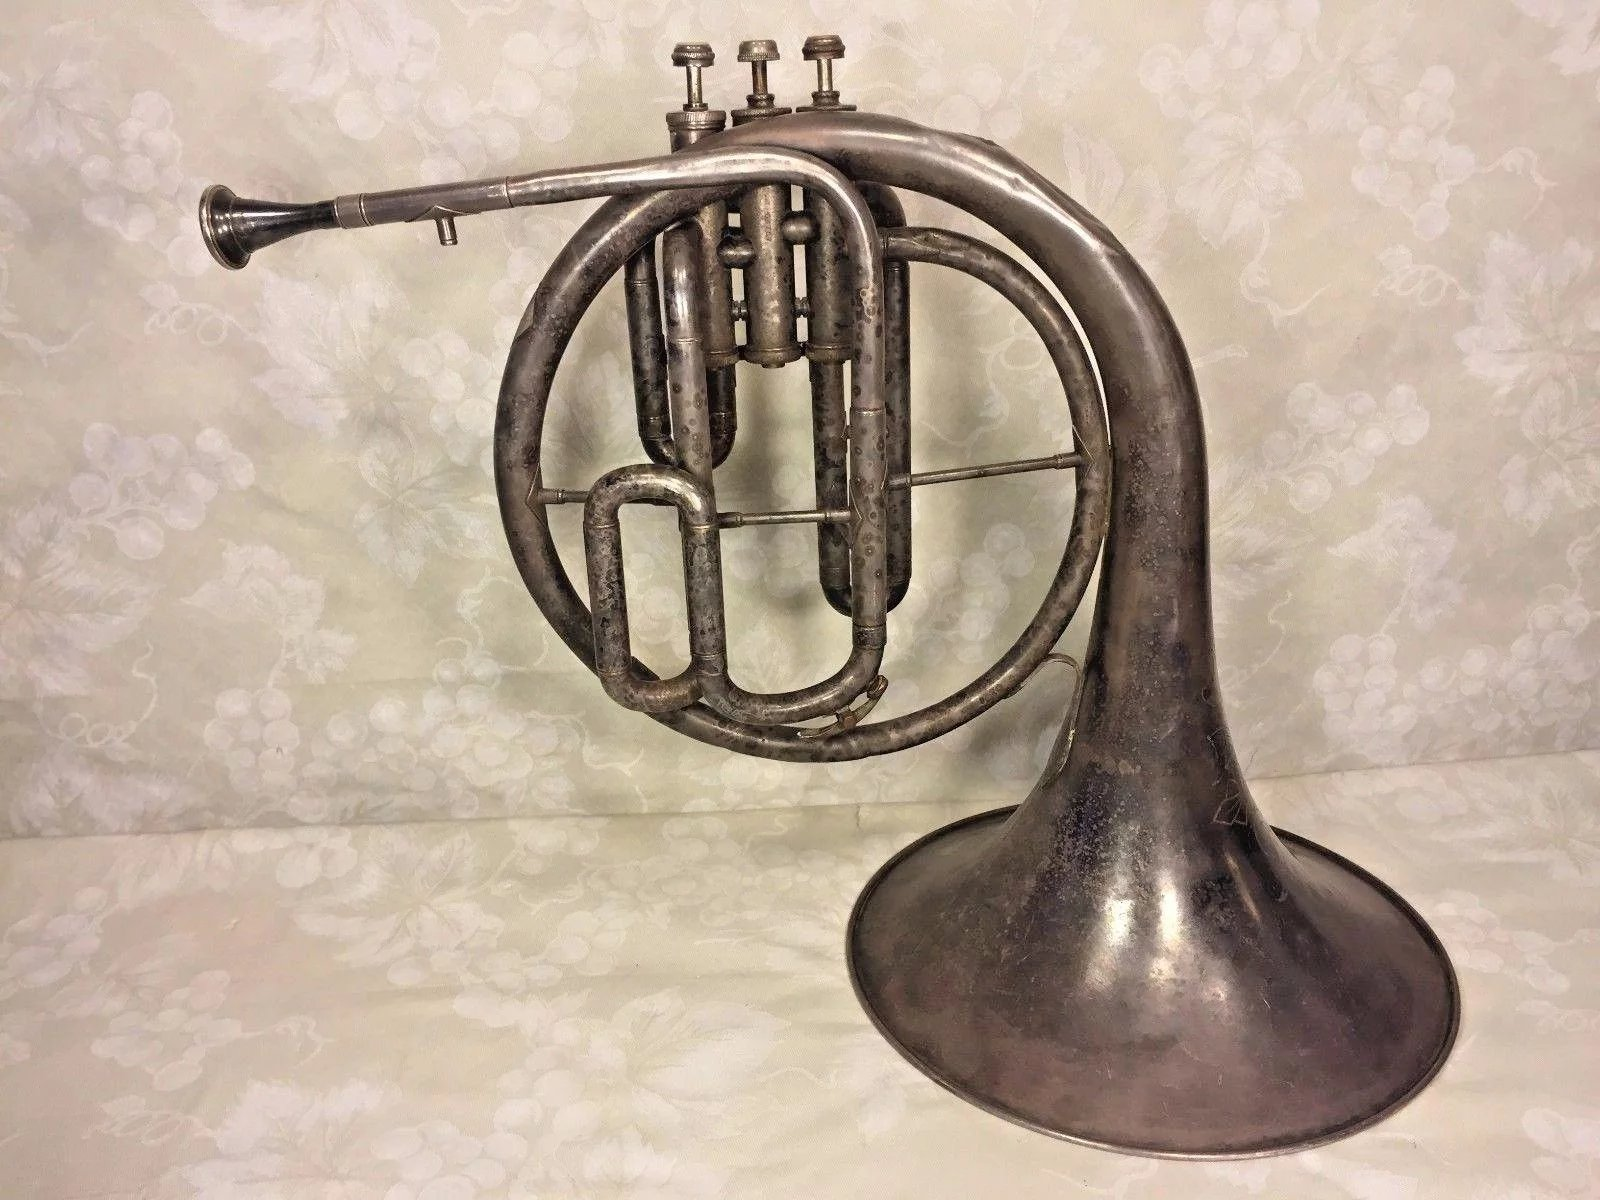 Conn Mellophone Images - Reverse Search